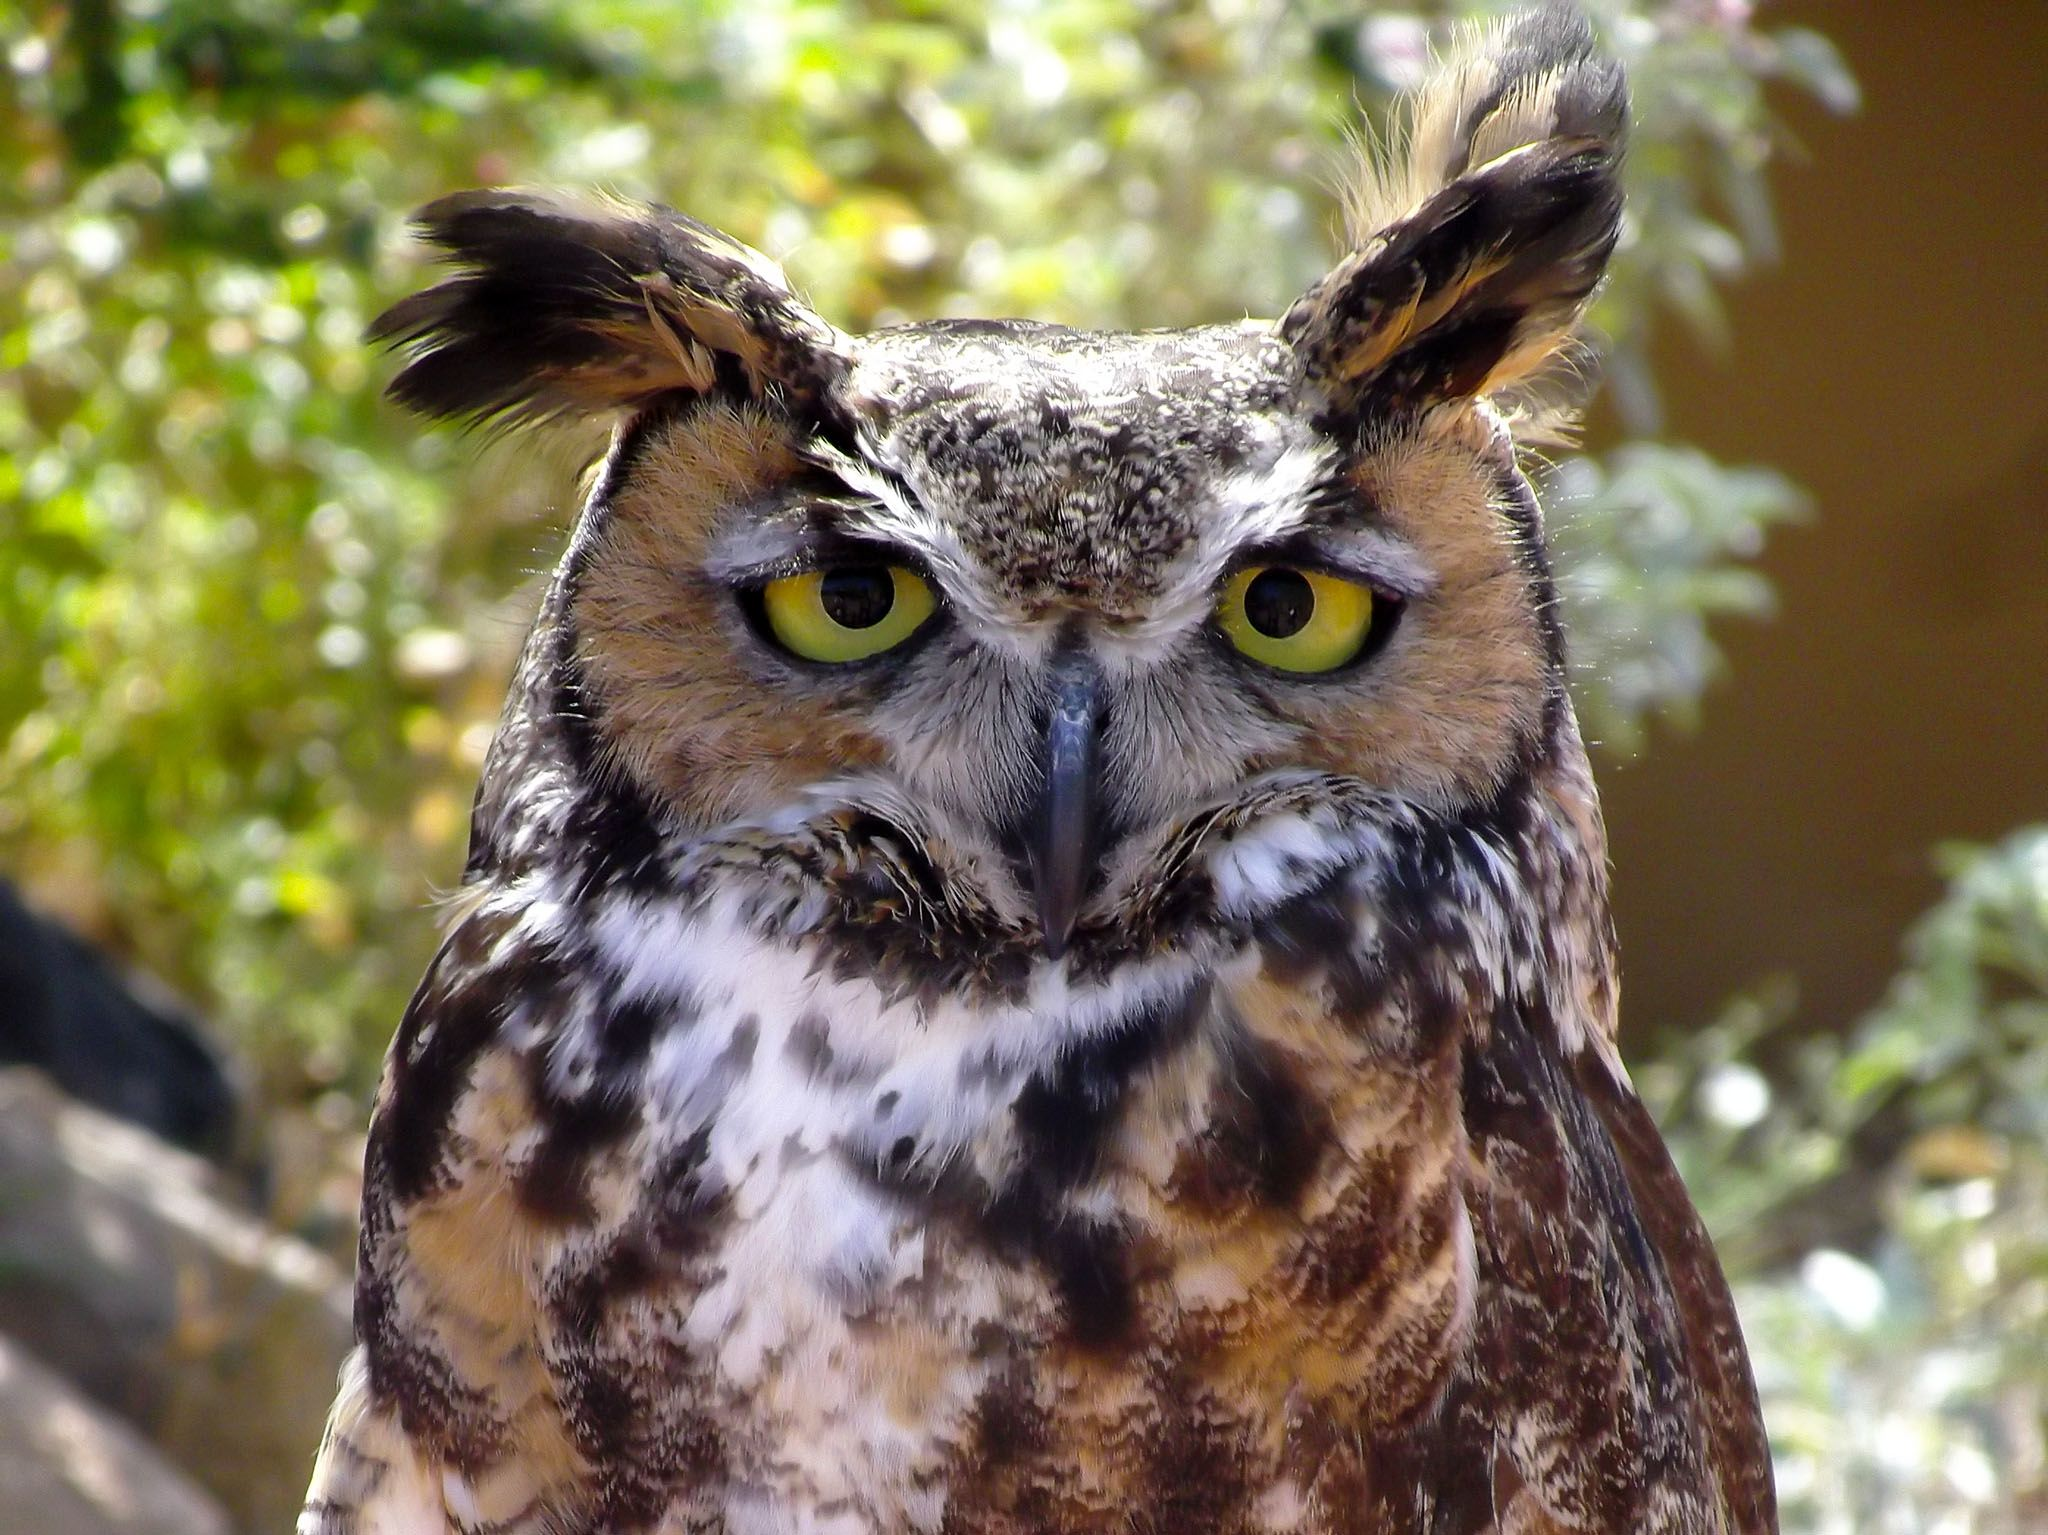 Arizona: Great horned owl. This image is from The Desert Sea. [Photo of the day - April 2017]